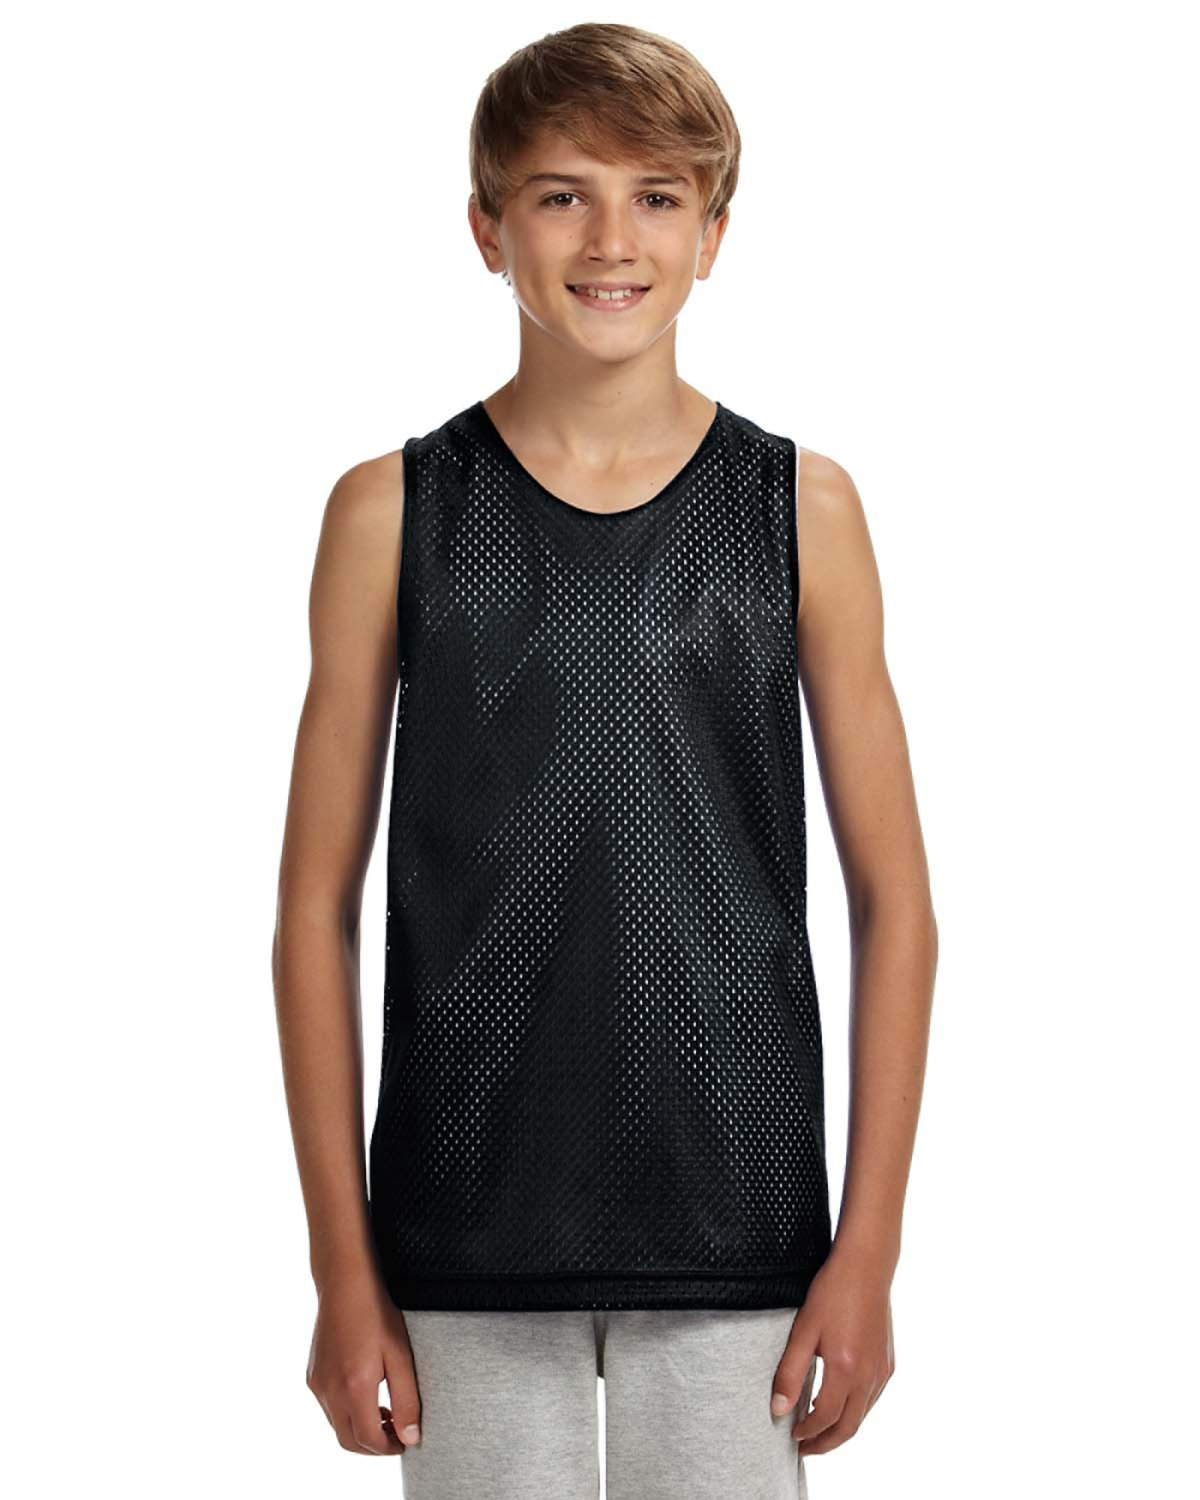 A4 N2206 - Youth Reversible Mesh Tank